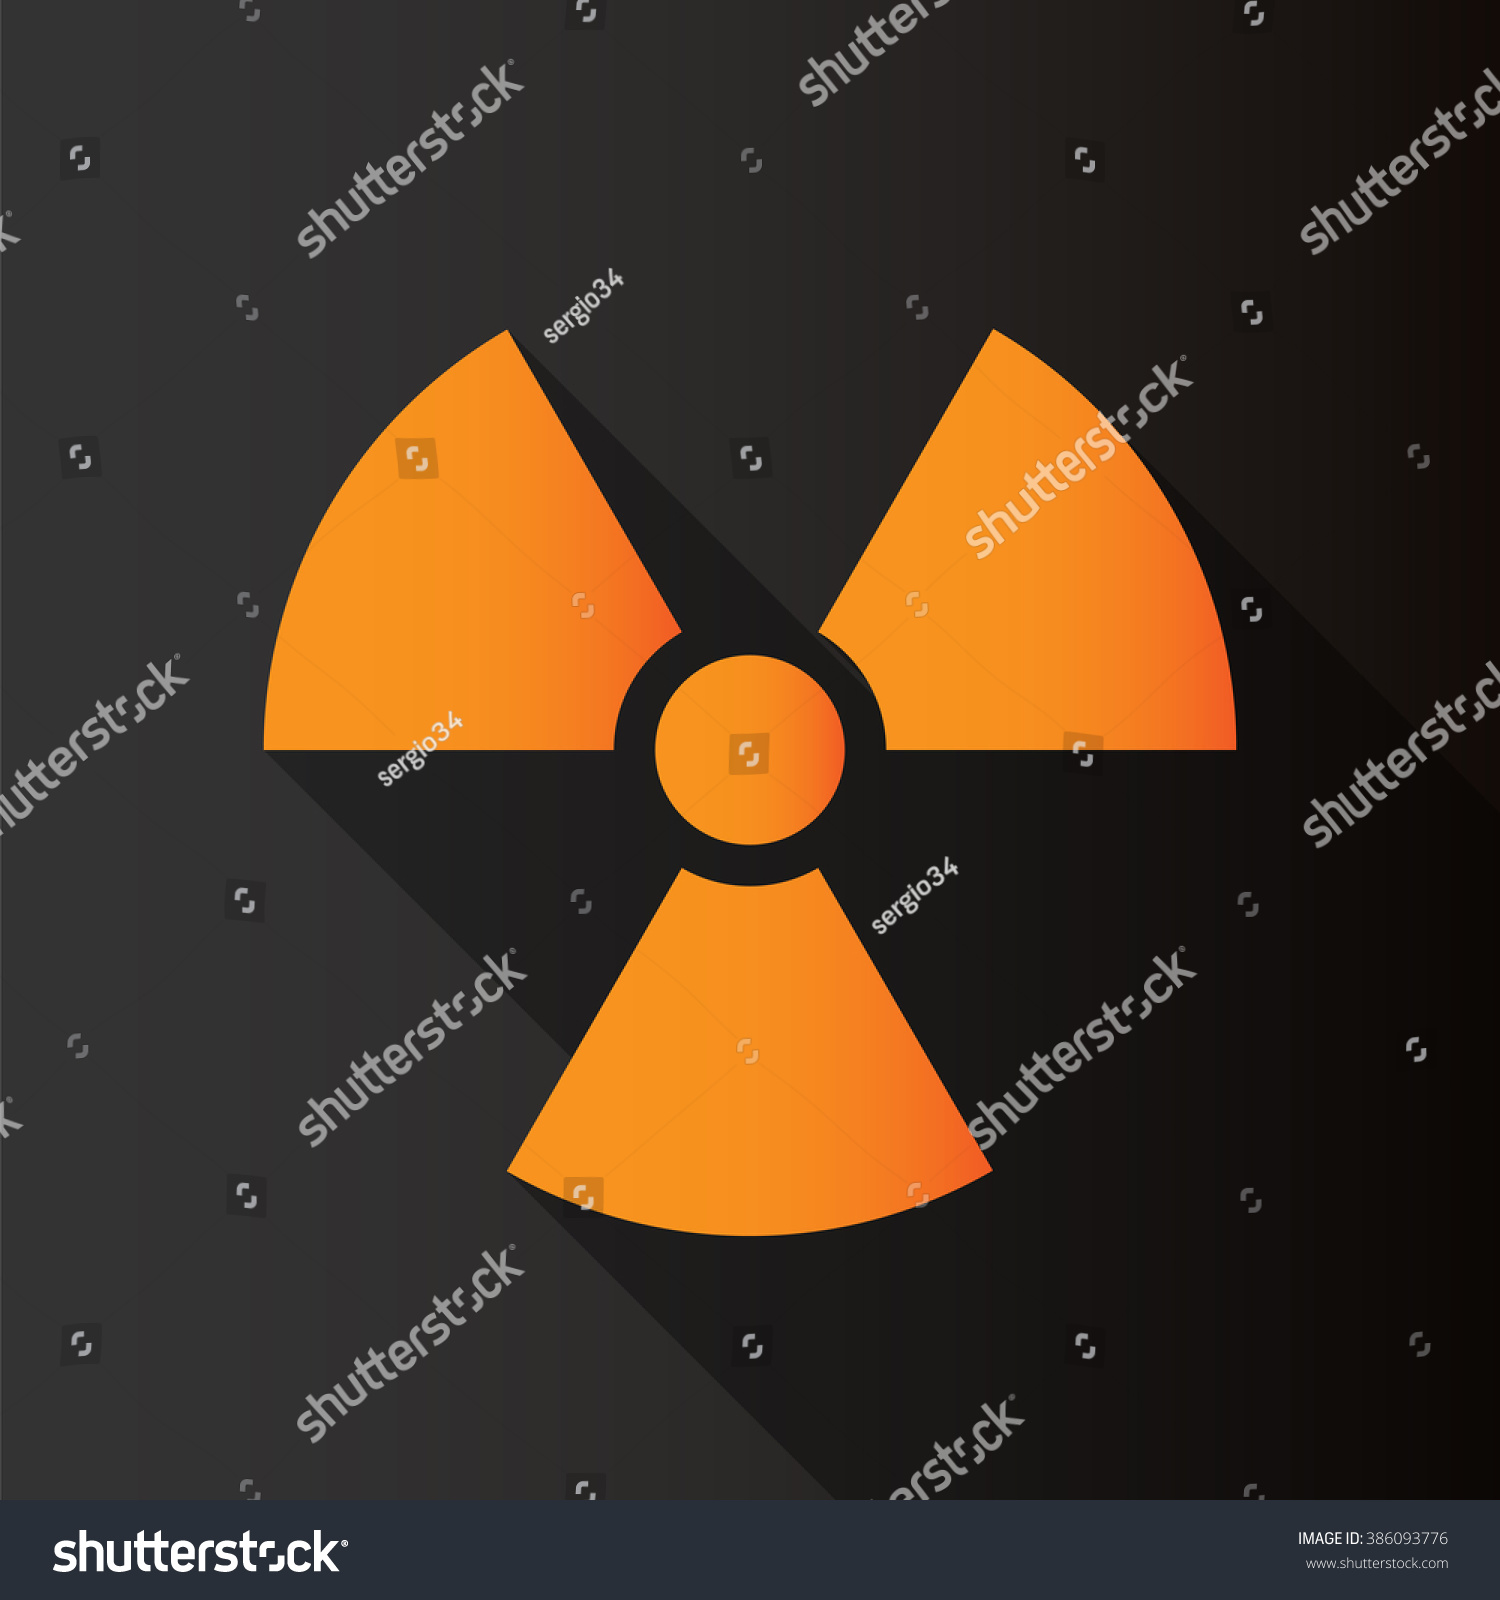 Radioactive symbol text image collections symbol and sign ideas radioactive symbol on black background long stock vector 386093776 radioactive symbol on black background long stock buycottarizona